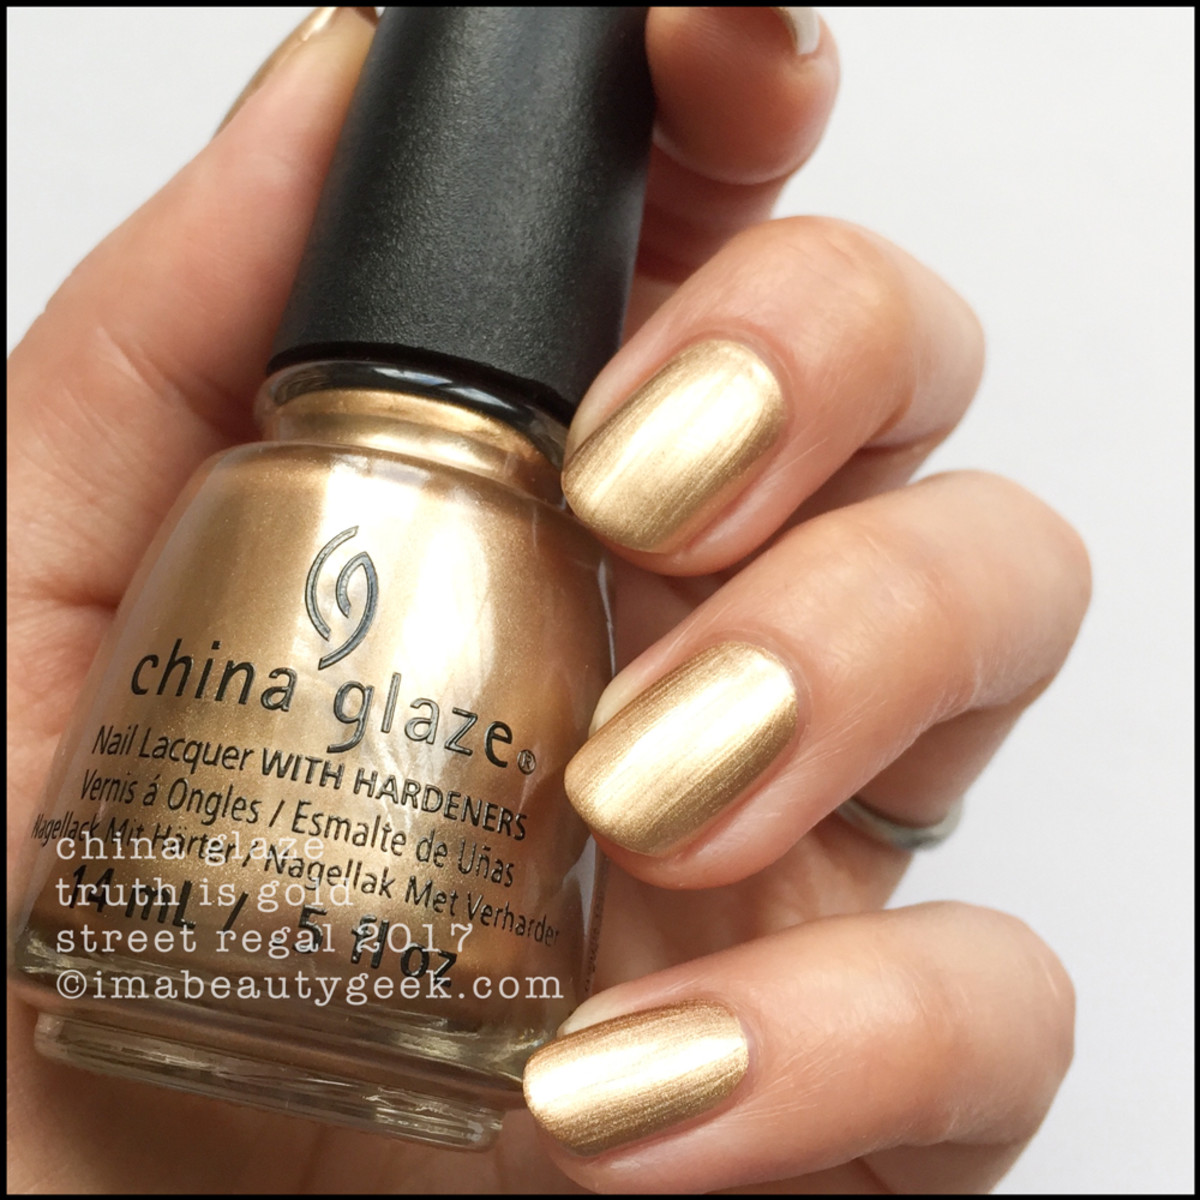 China Glaze Truth is Gold - Street Regal Collection Fall 2017